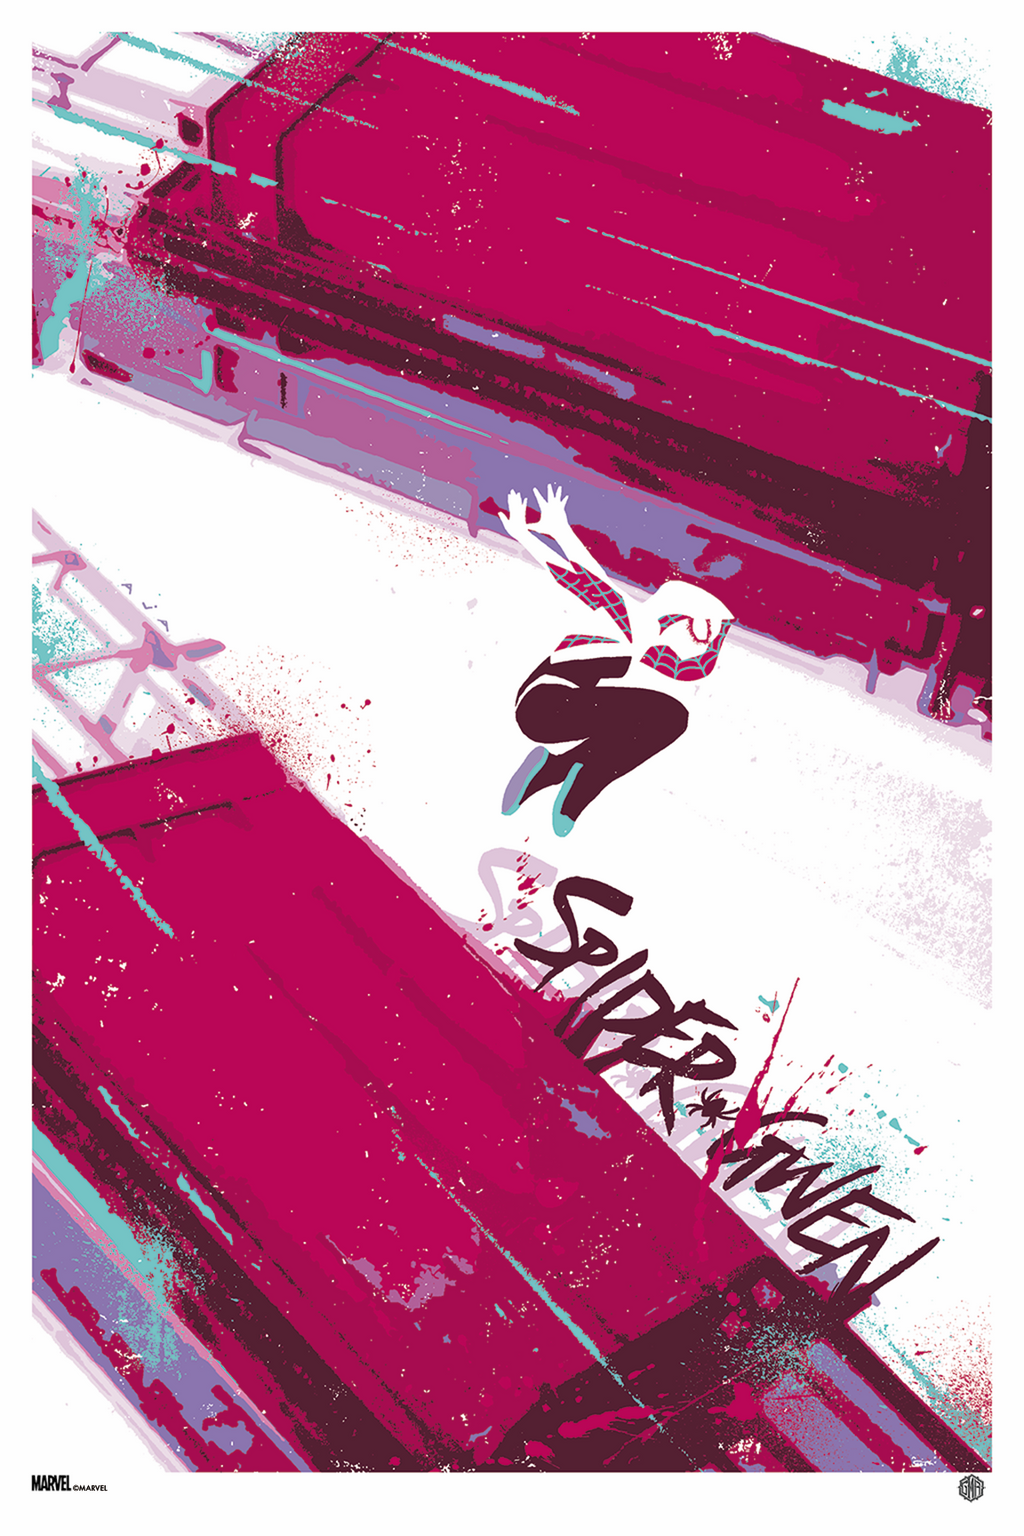 """Spider-Gwen #10"" (Variant) - Officially Licensed & Limited Edition - Marvel Comics Poster Art By David Aja"